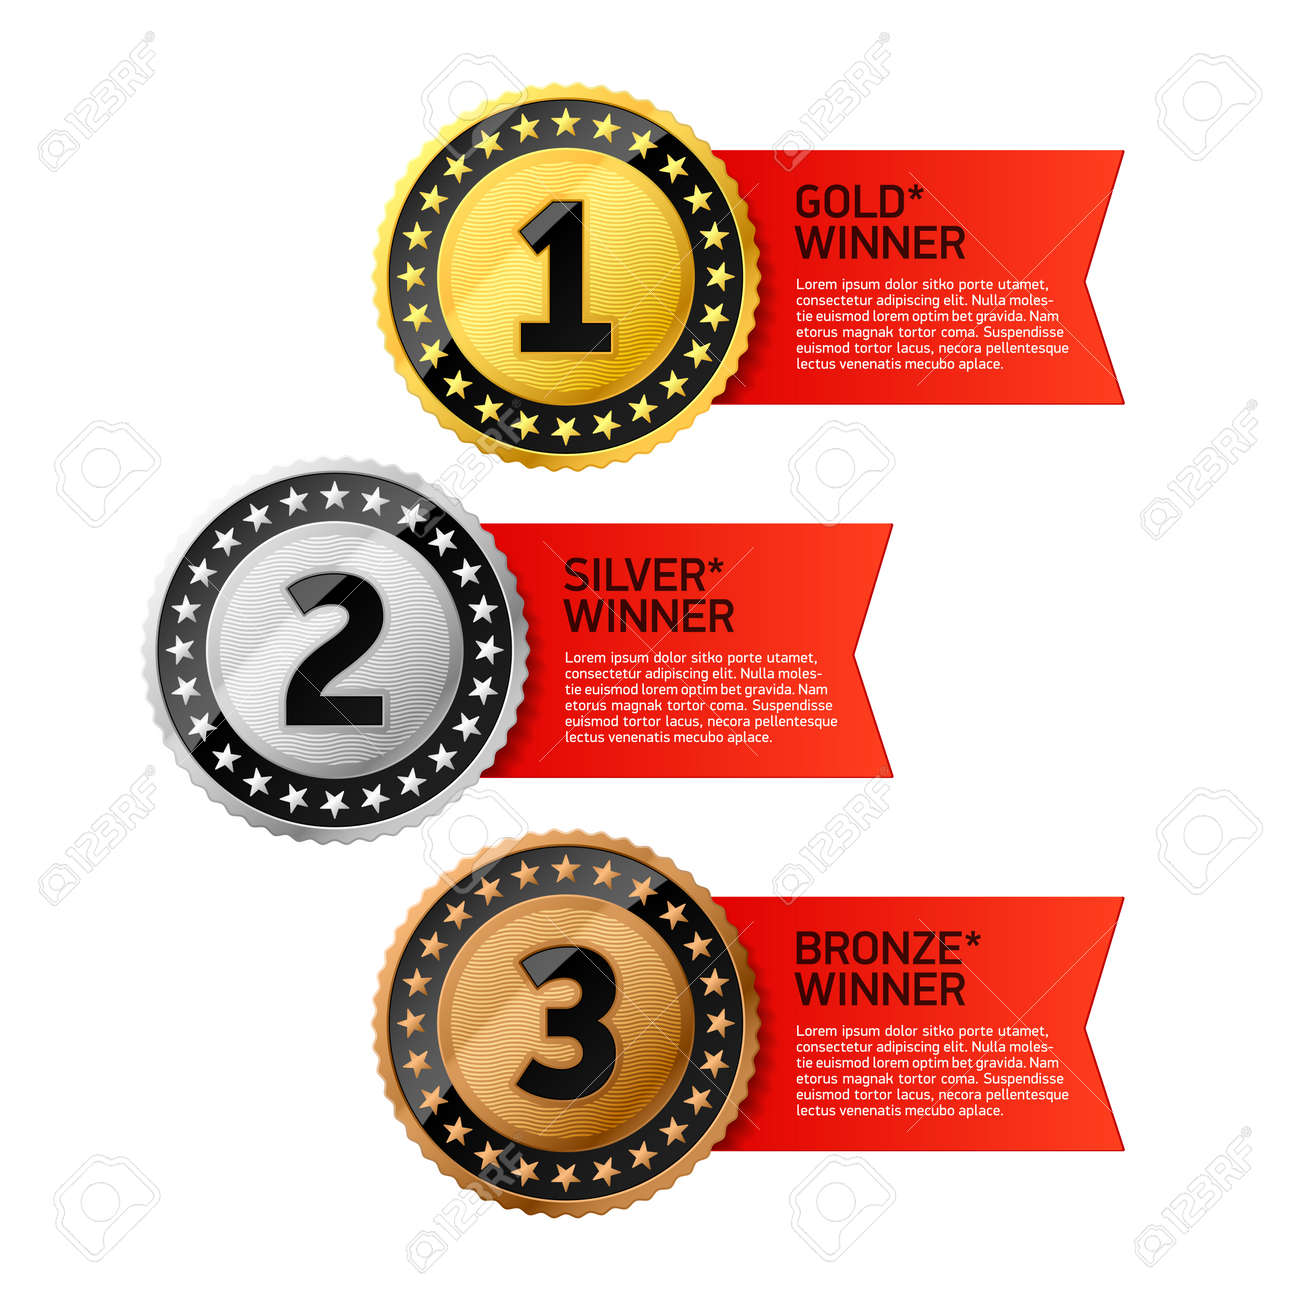 Gold, Silver and Bronze winners medals - 26262472